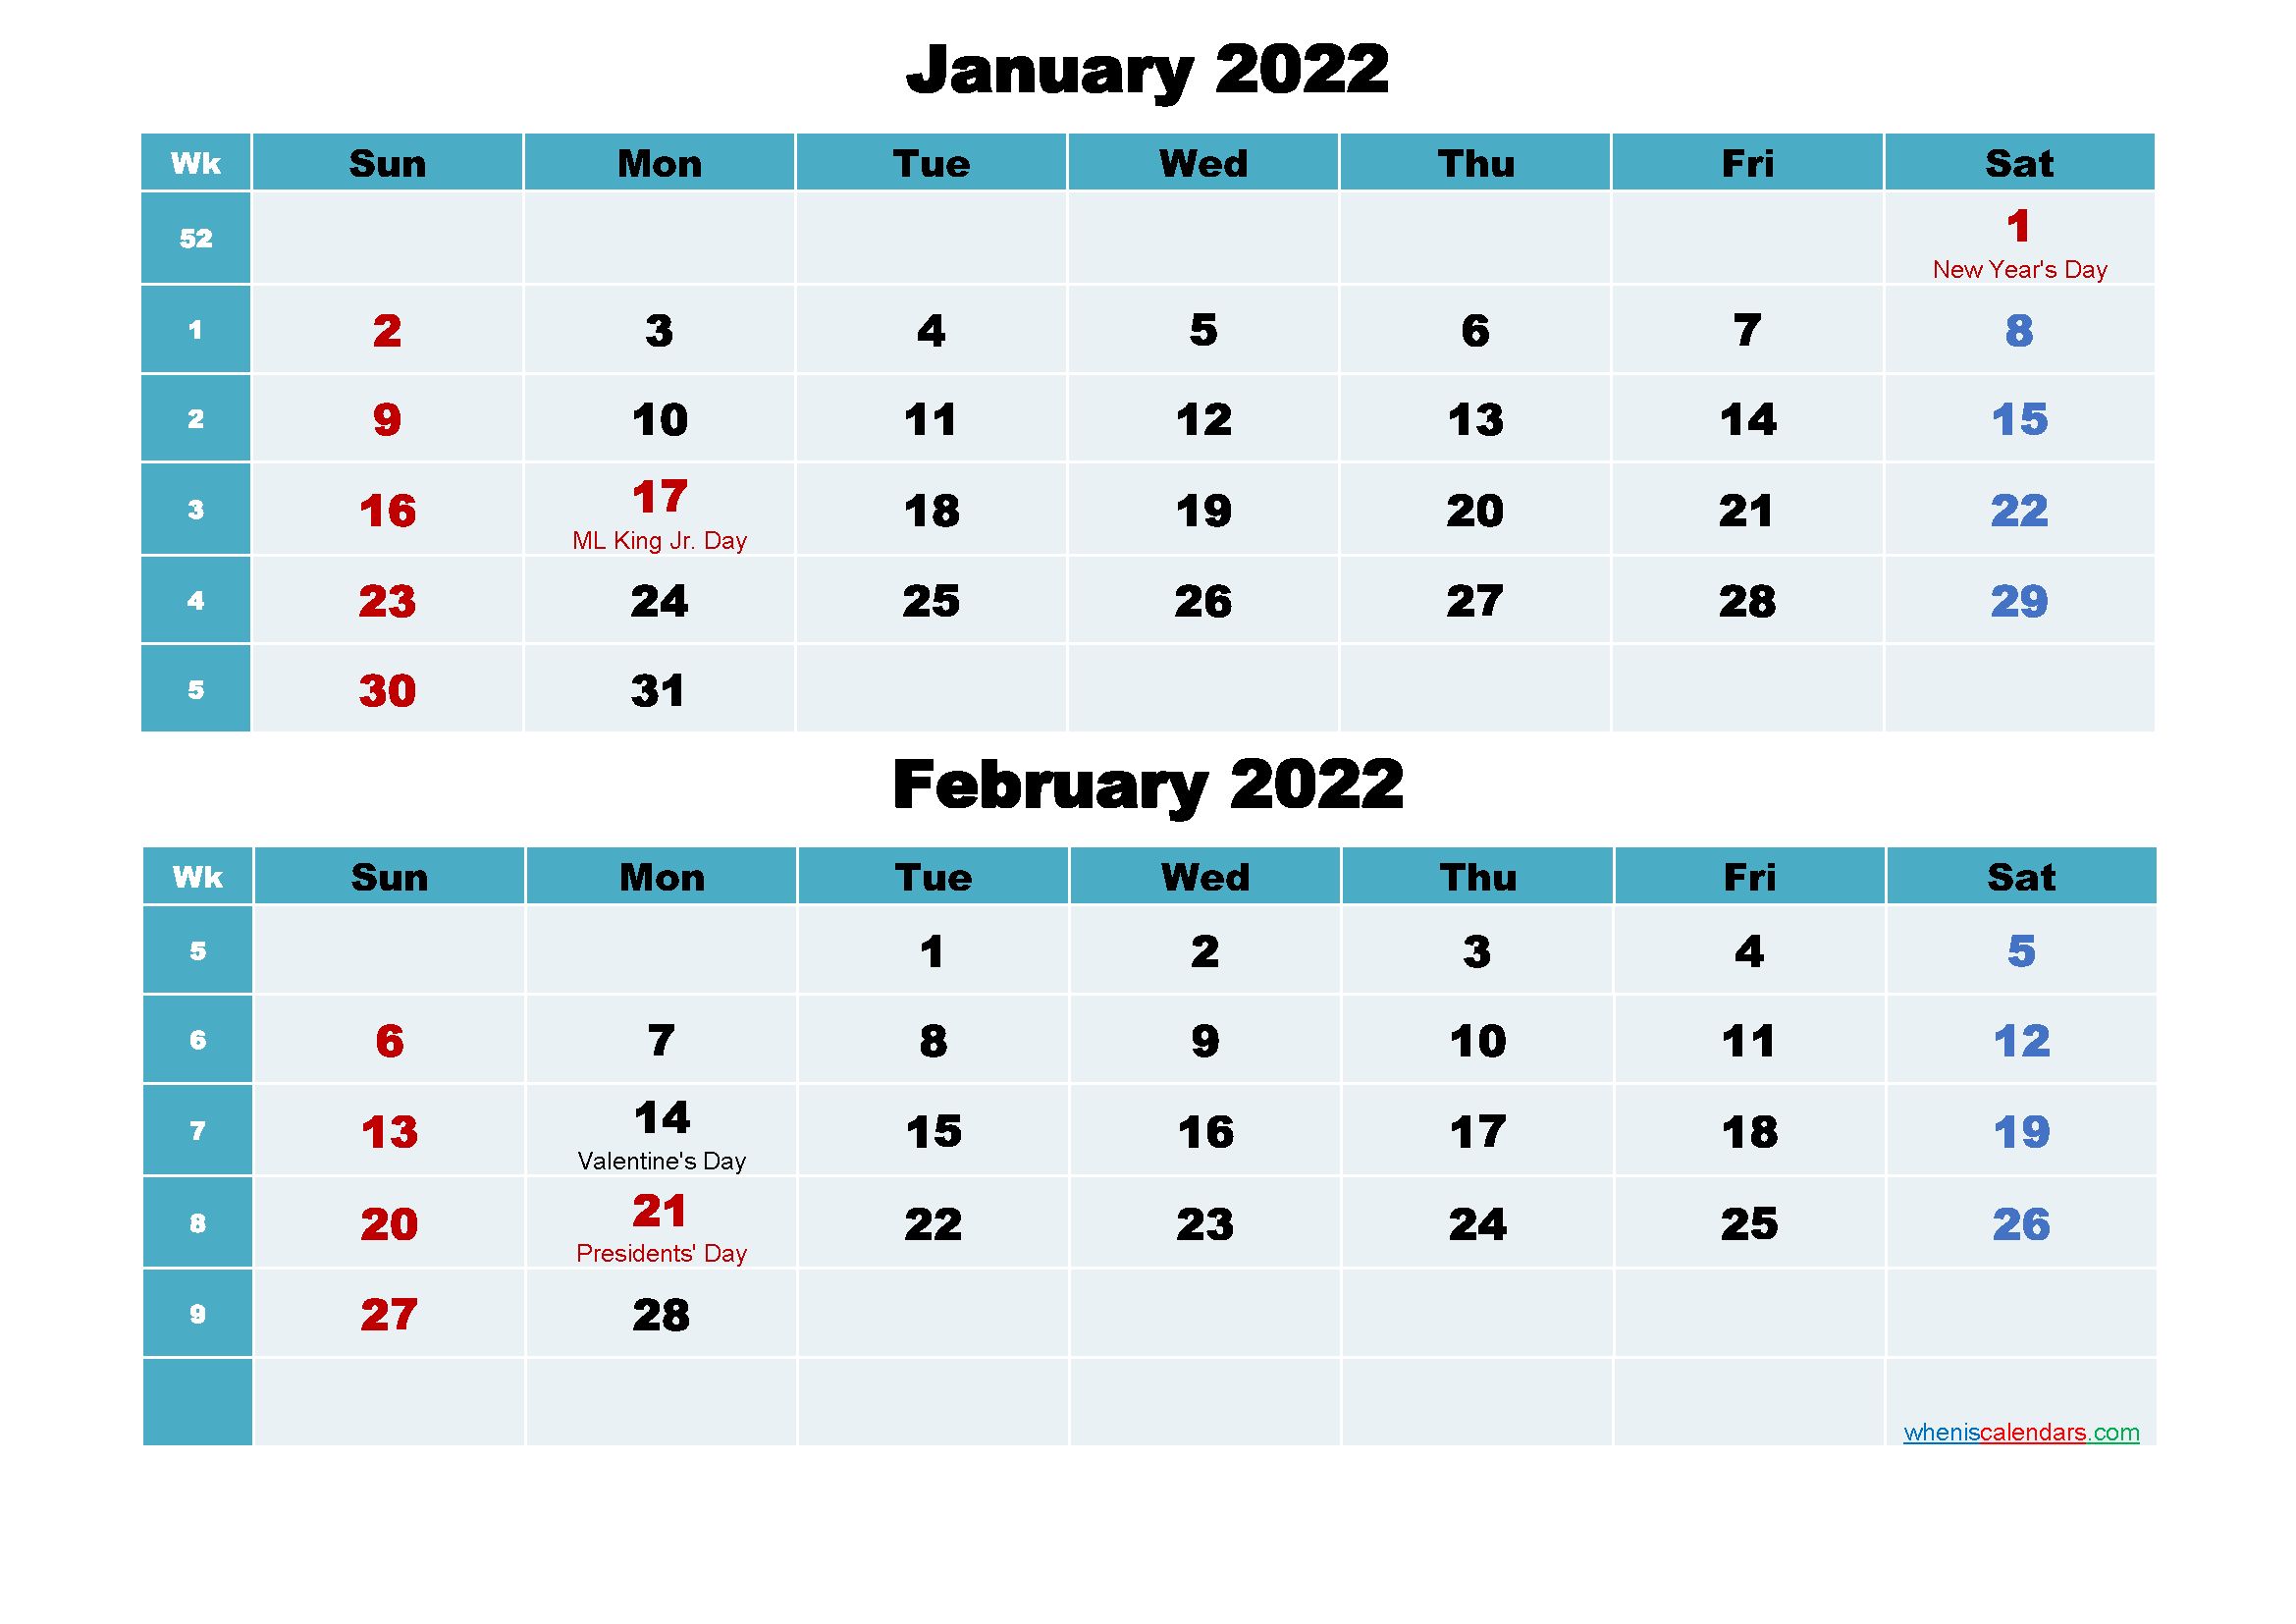 January and February 2022 Calendar with Holidays